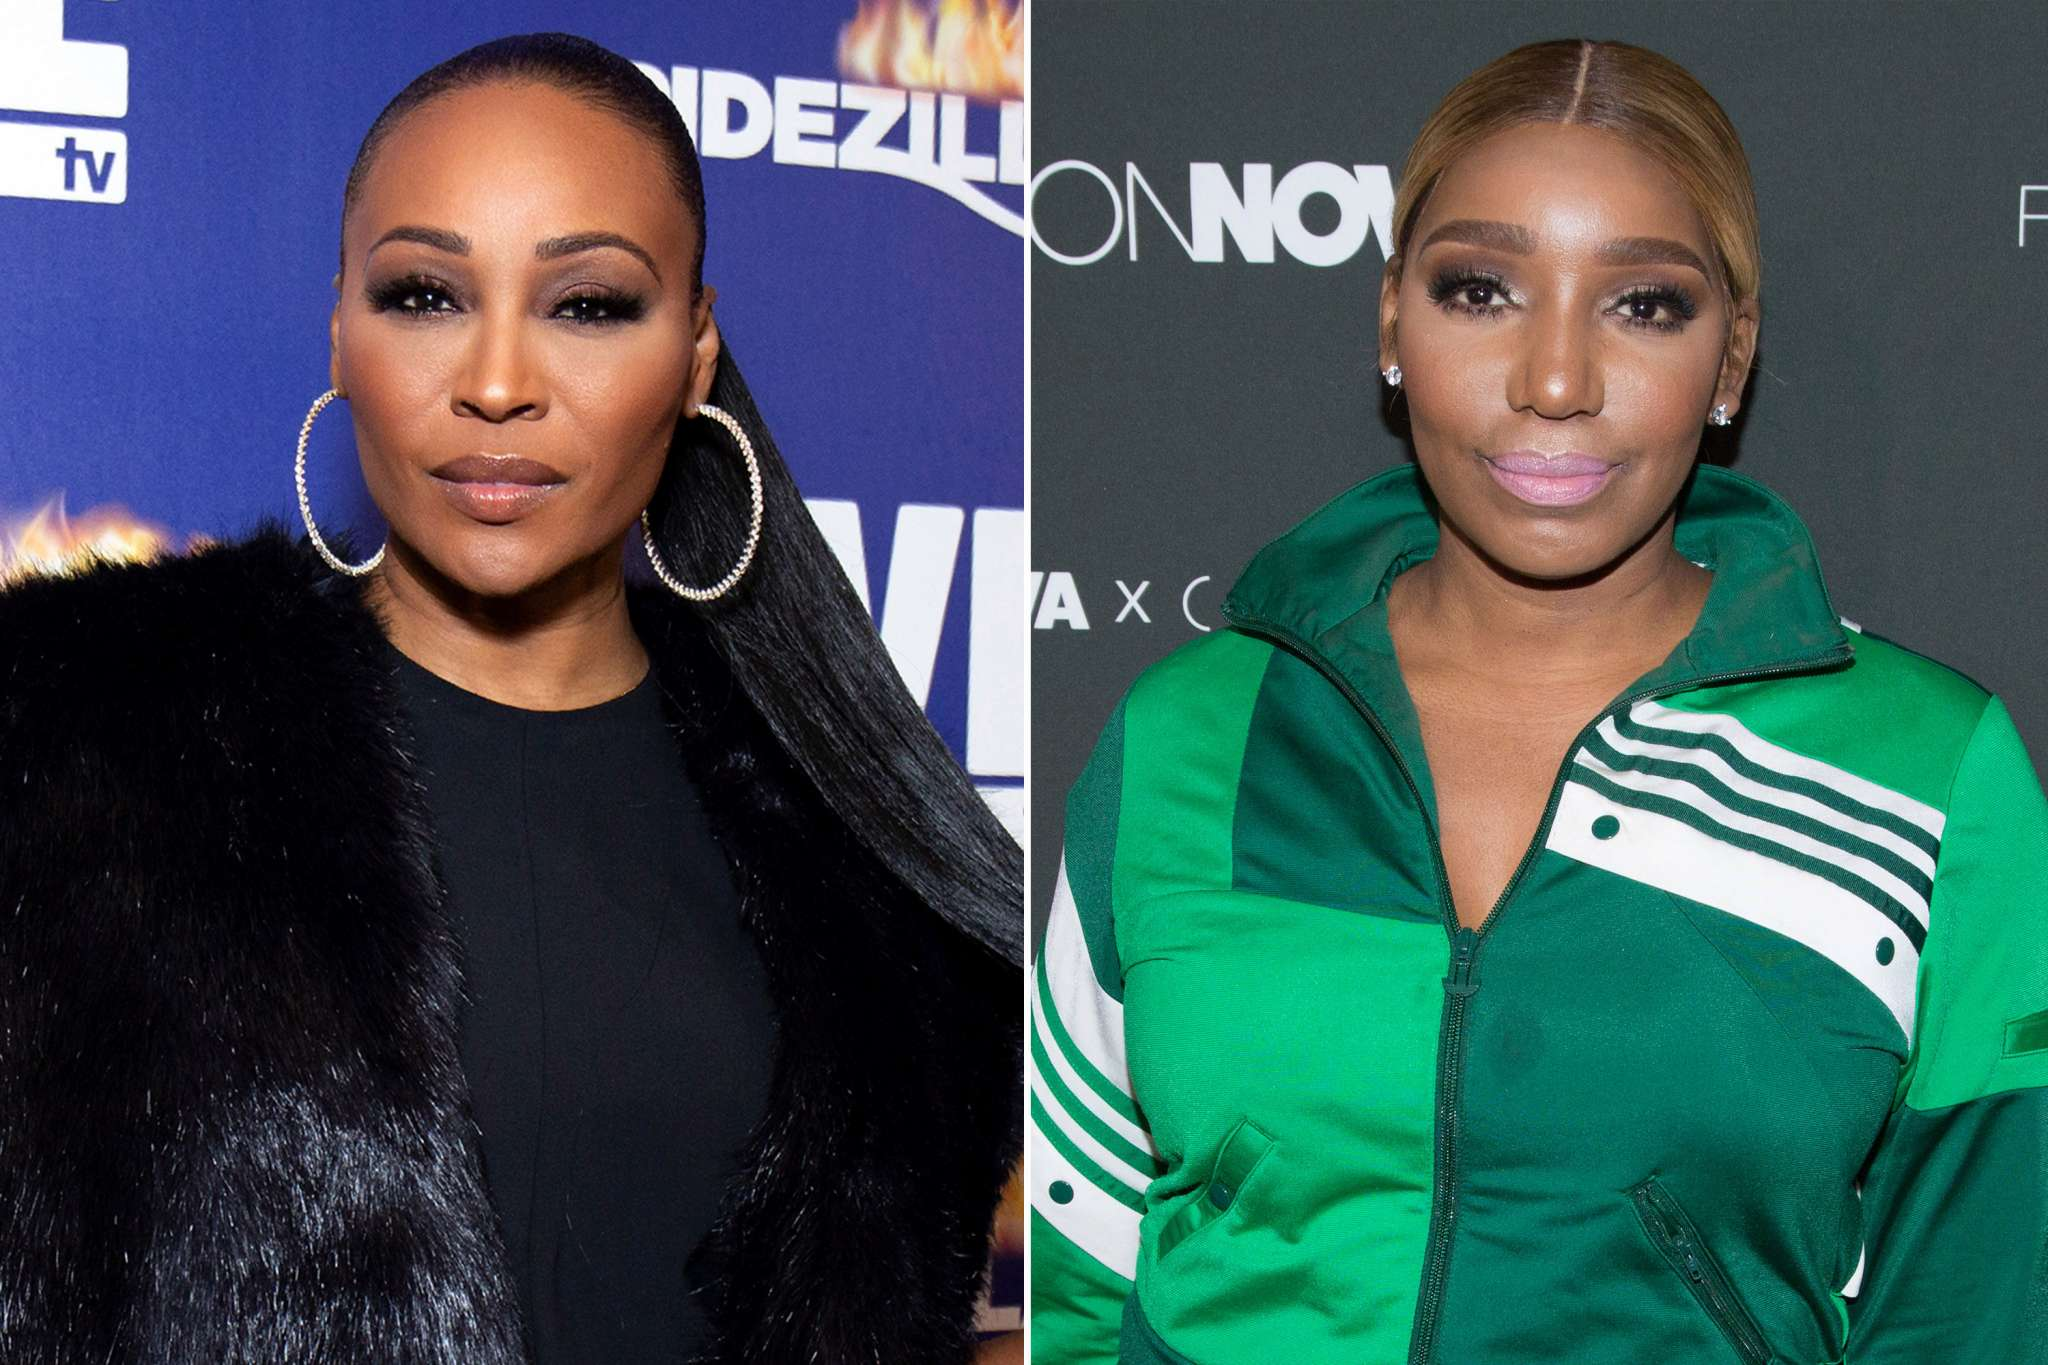 nene-leakes-fans-tell-her-that-cynthia-bailey-was-never-her-real-friend-but-theyd-like-porsha-williams-back-in-nenes-life